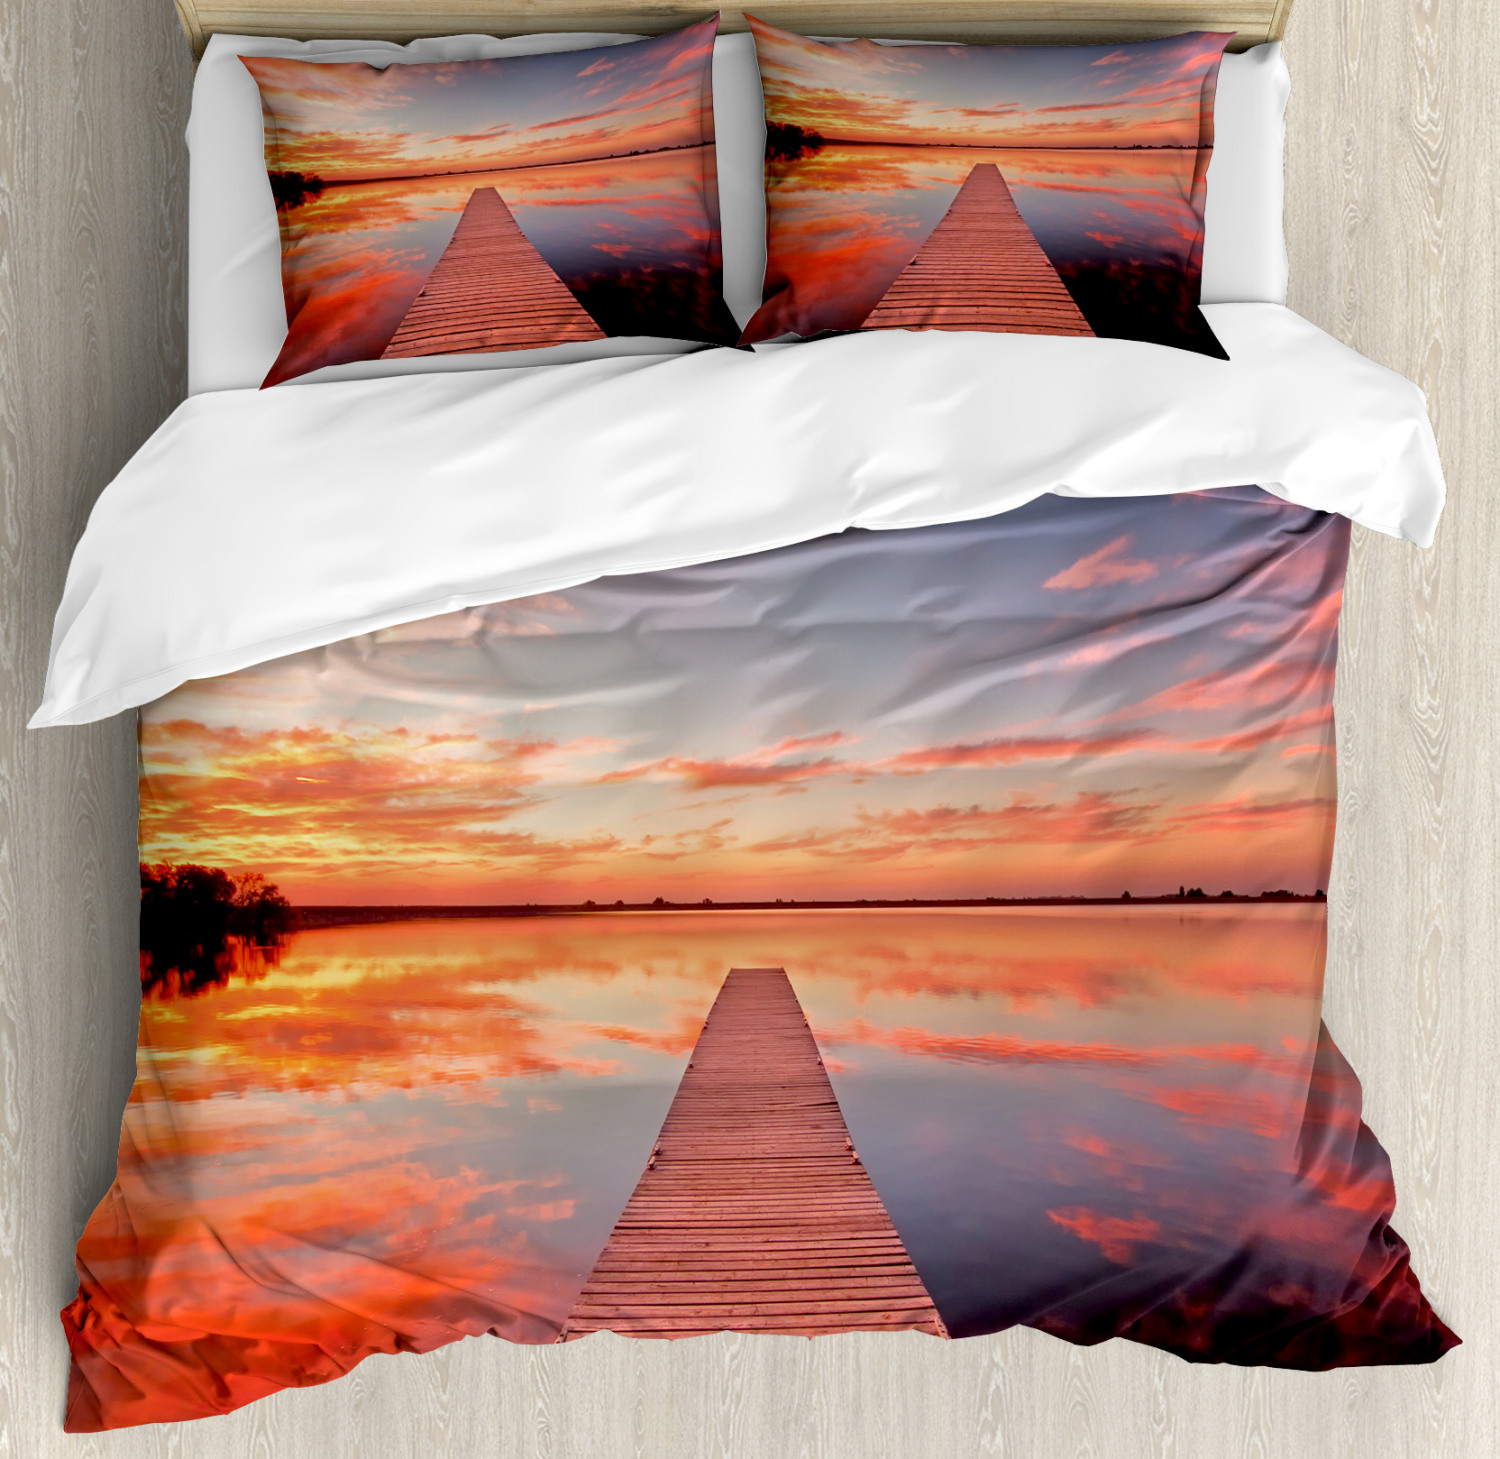 Nature Duvet Cover Set with Pillow Shams Pathway Sunset at Ocean Print